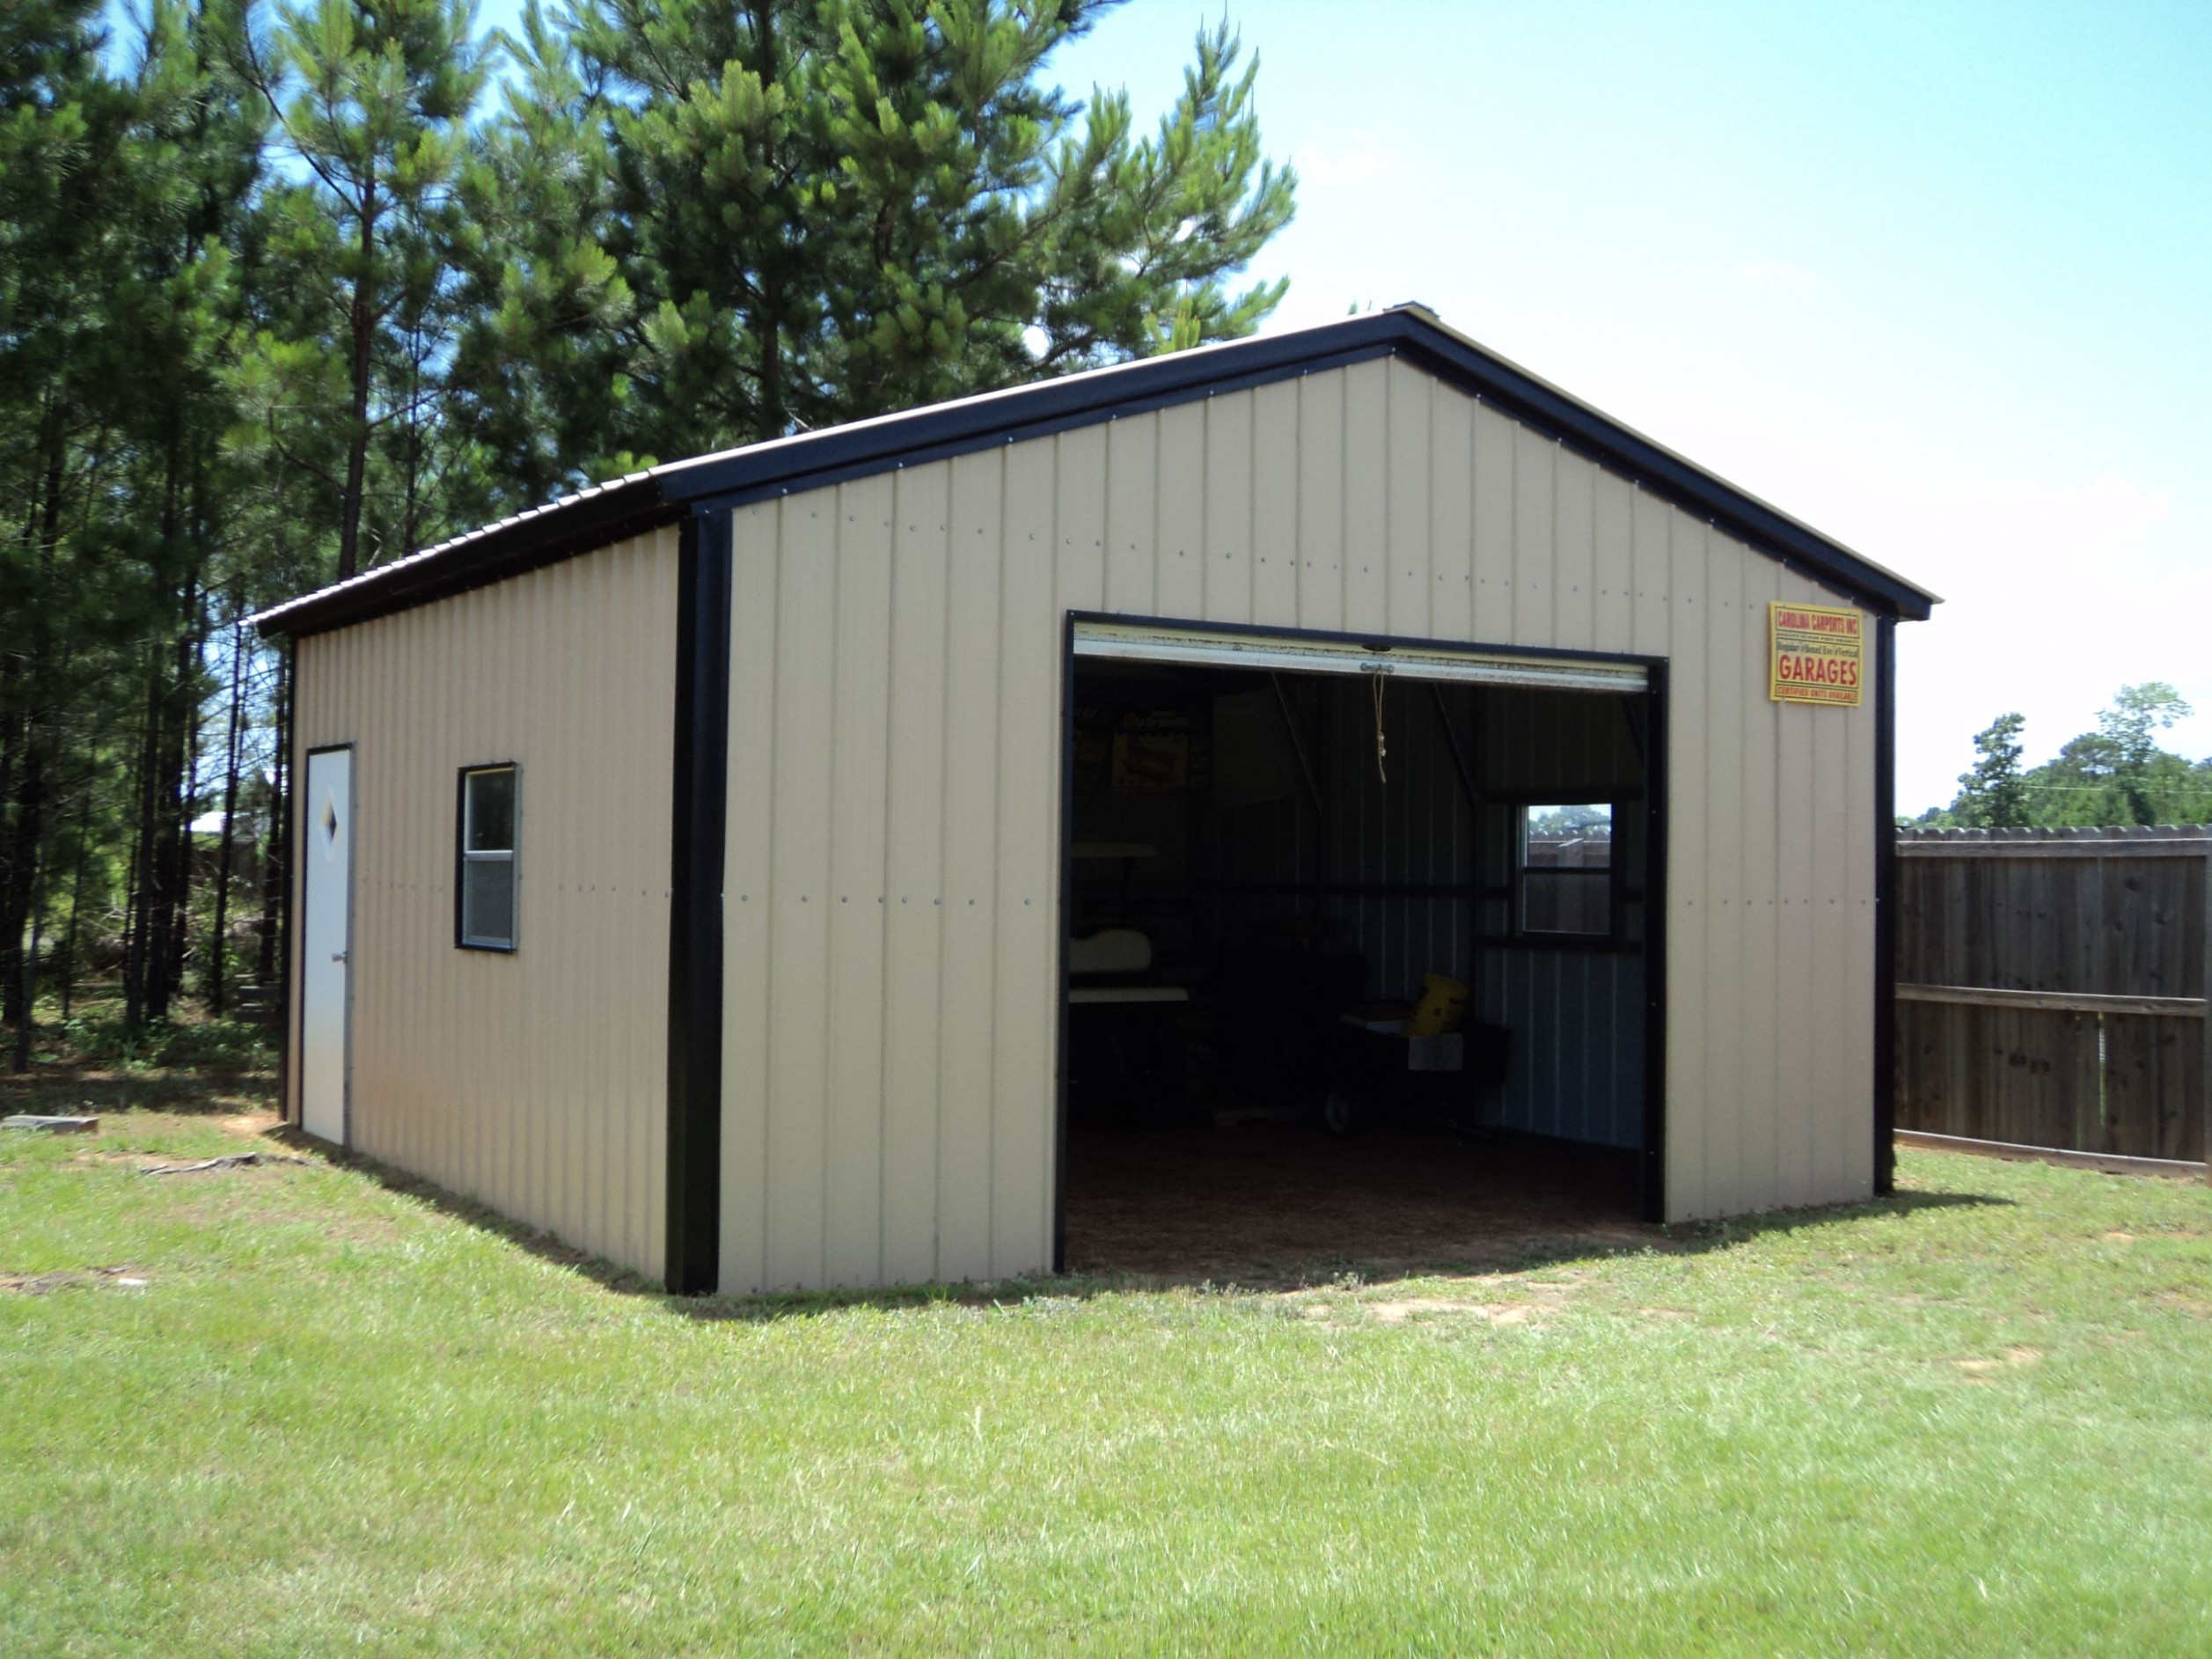 18 X 21 X 9 All Vertical Garage | Choice Metal Buildings How To Frame A Carport For A Garage Door